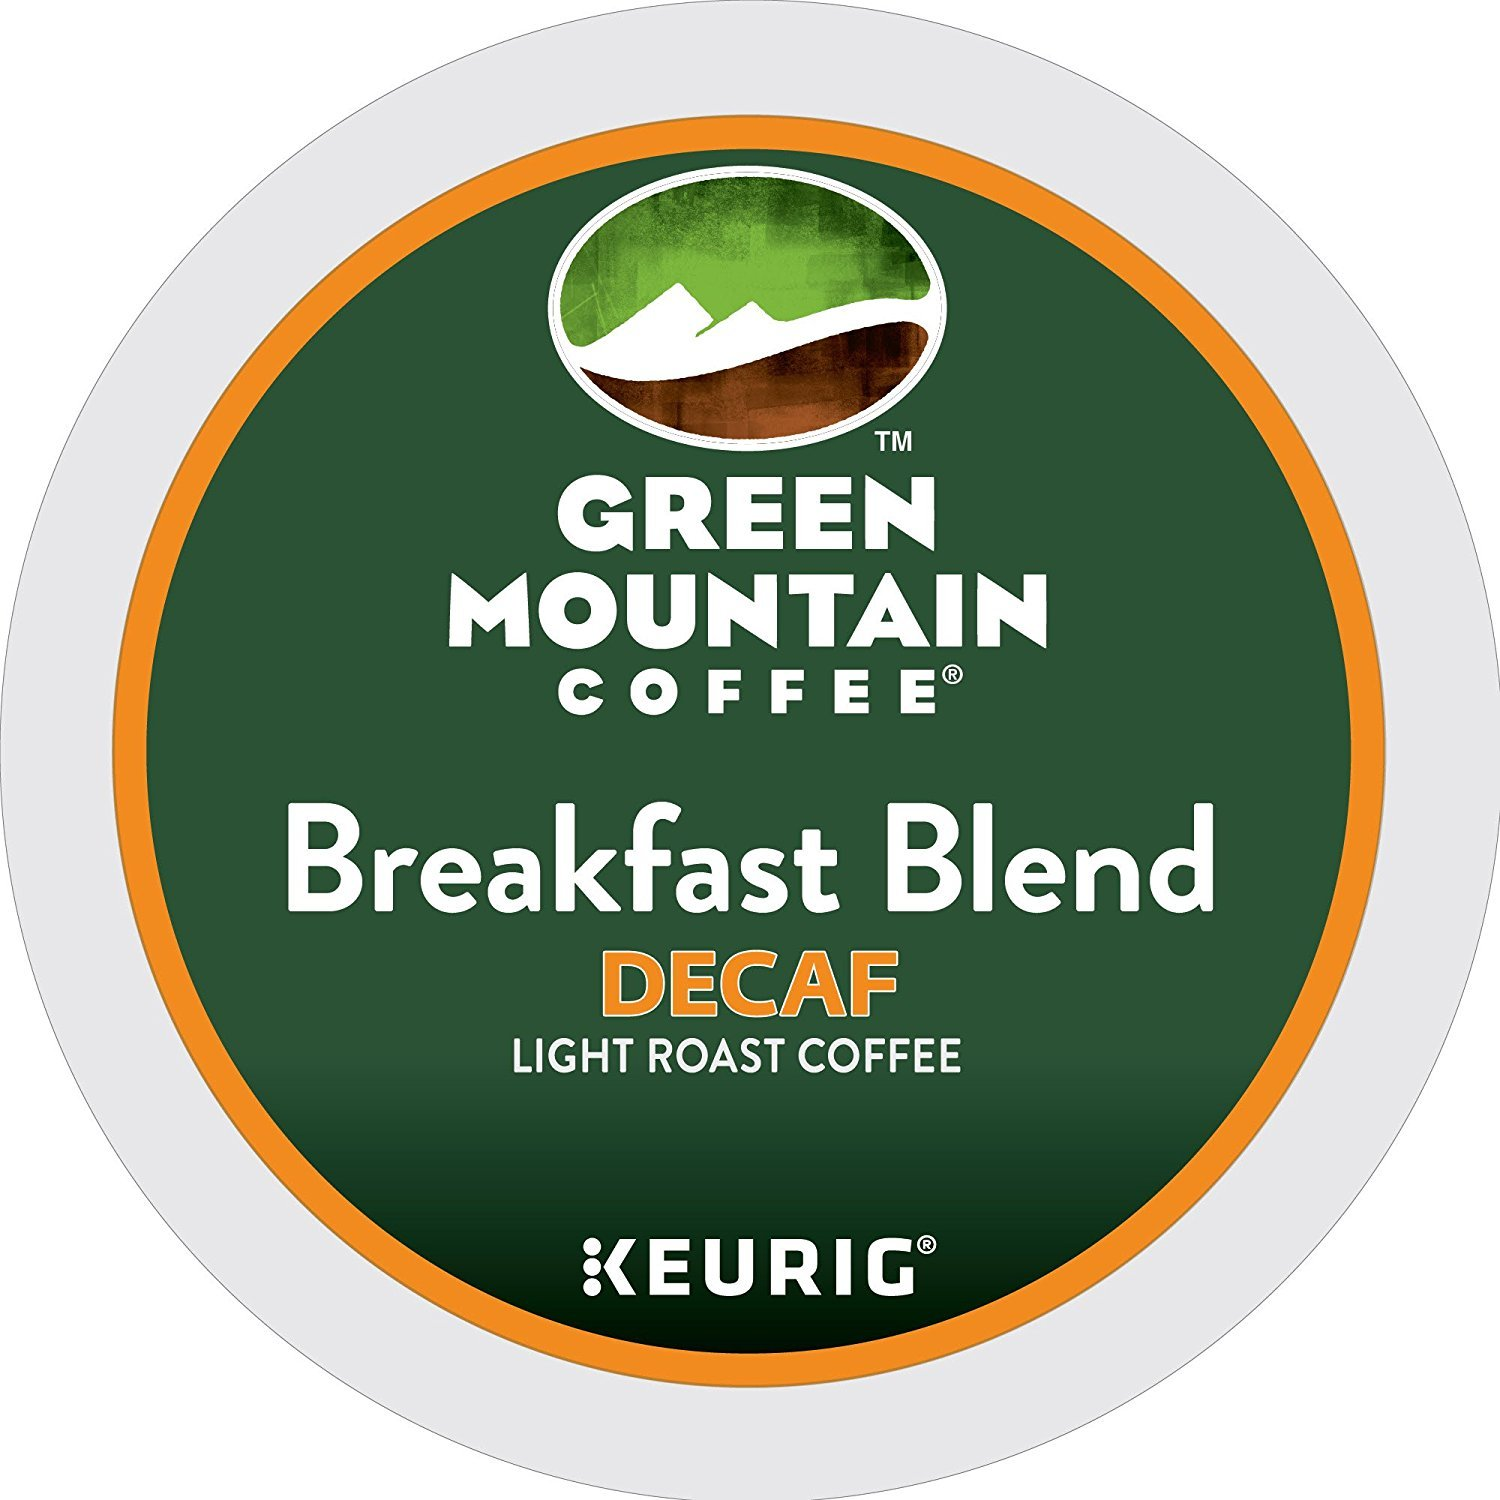 Green Mountain Coffee Breakfast Blend Decaf Keurig Single-Serve K-Cup Pods, Light Roast Coffee (Breakfast Blend Decaf, 100 Count) by Green Mountain Coffee